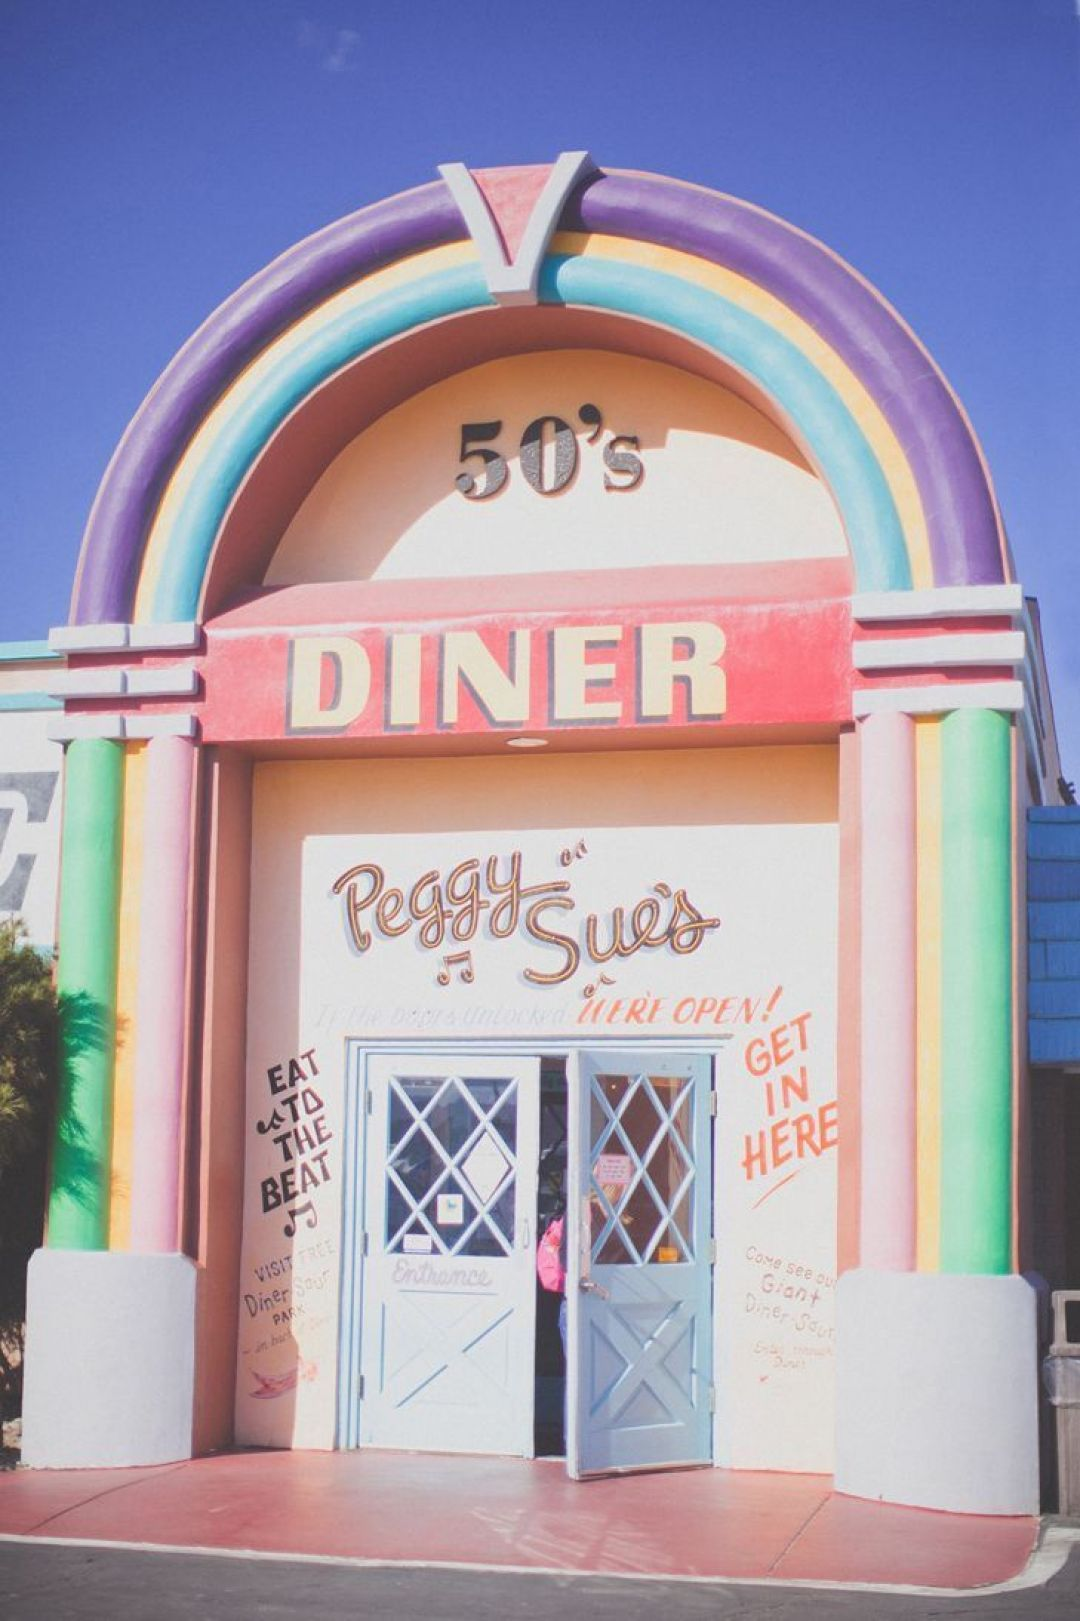 50s Android Iphone Desktop Hd Backgrounds Wallpapers 1080p 4k 125975 Hdwallpapers Androidw Pastel Pink Aesthetic Wallpapers Vintage Vintage Diner